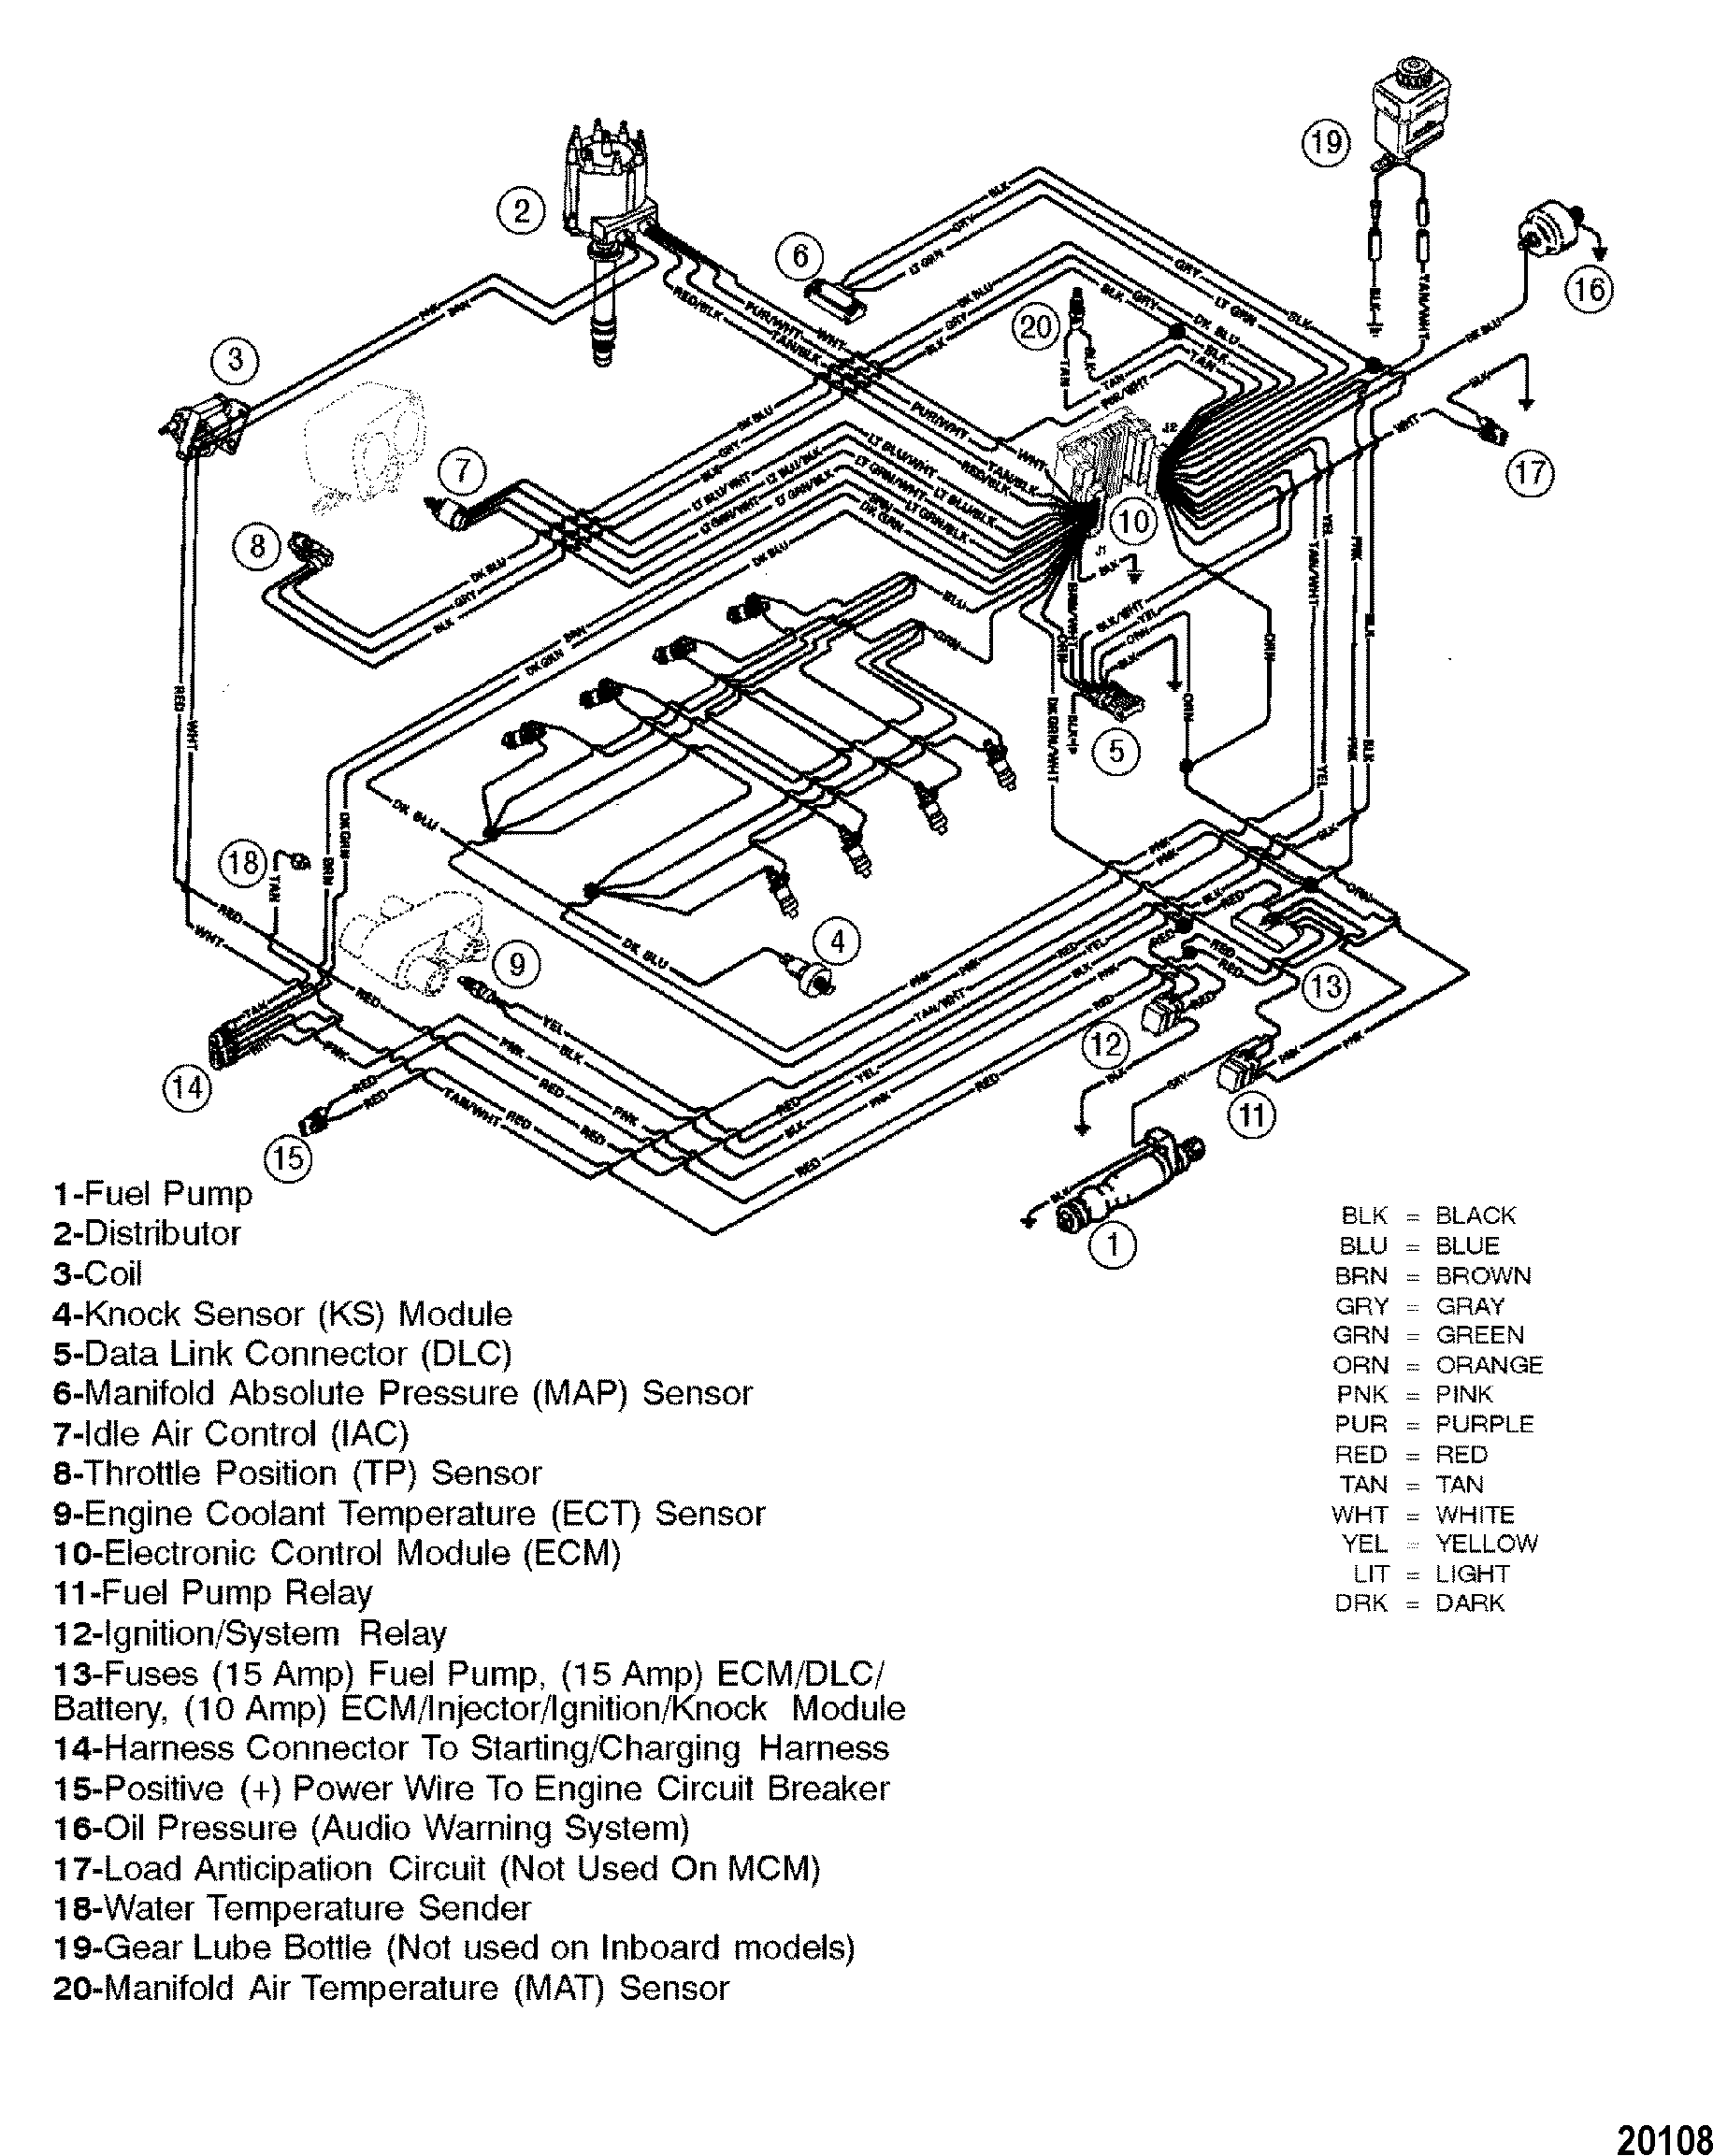 Mercruiser 5 7 Wiring Diagram likewise Forum posts moreover 3oa2m 1996 Polaris Sl700 Need Information Regarding besides Porsche 993 How To Install A Kill Switch 376023 besides King Quad Wiring Diagram. on jet boat ignition wiring diagram